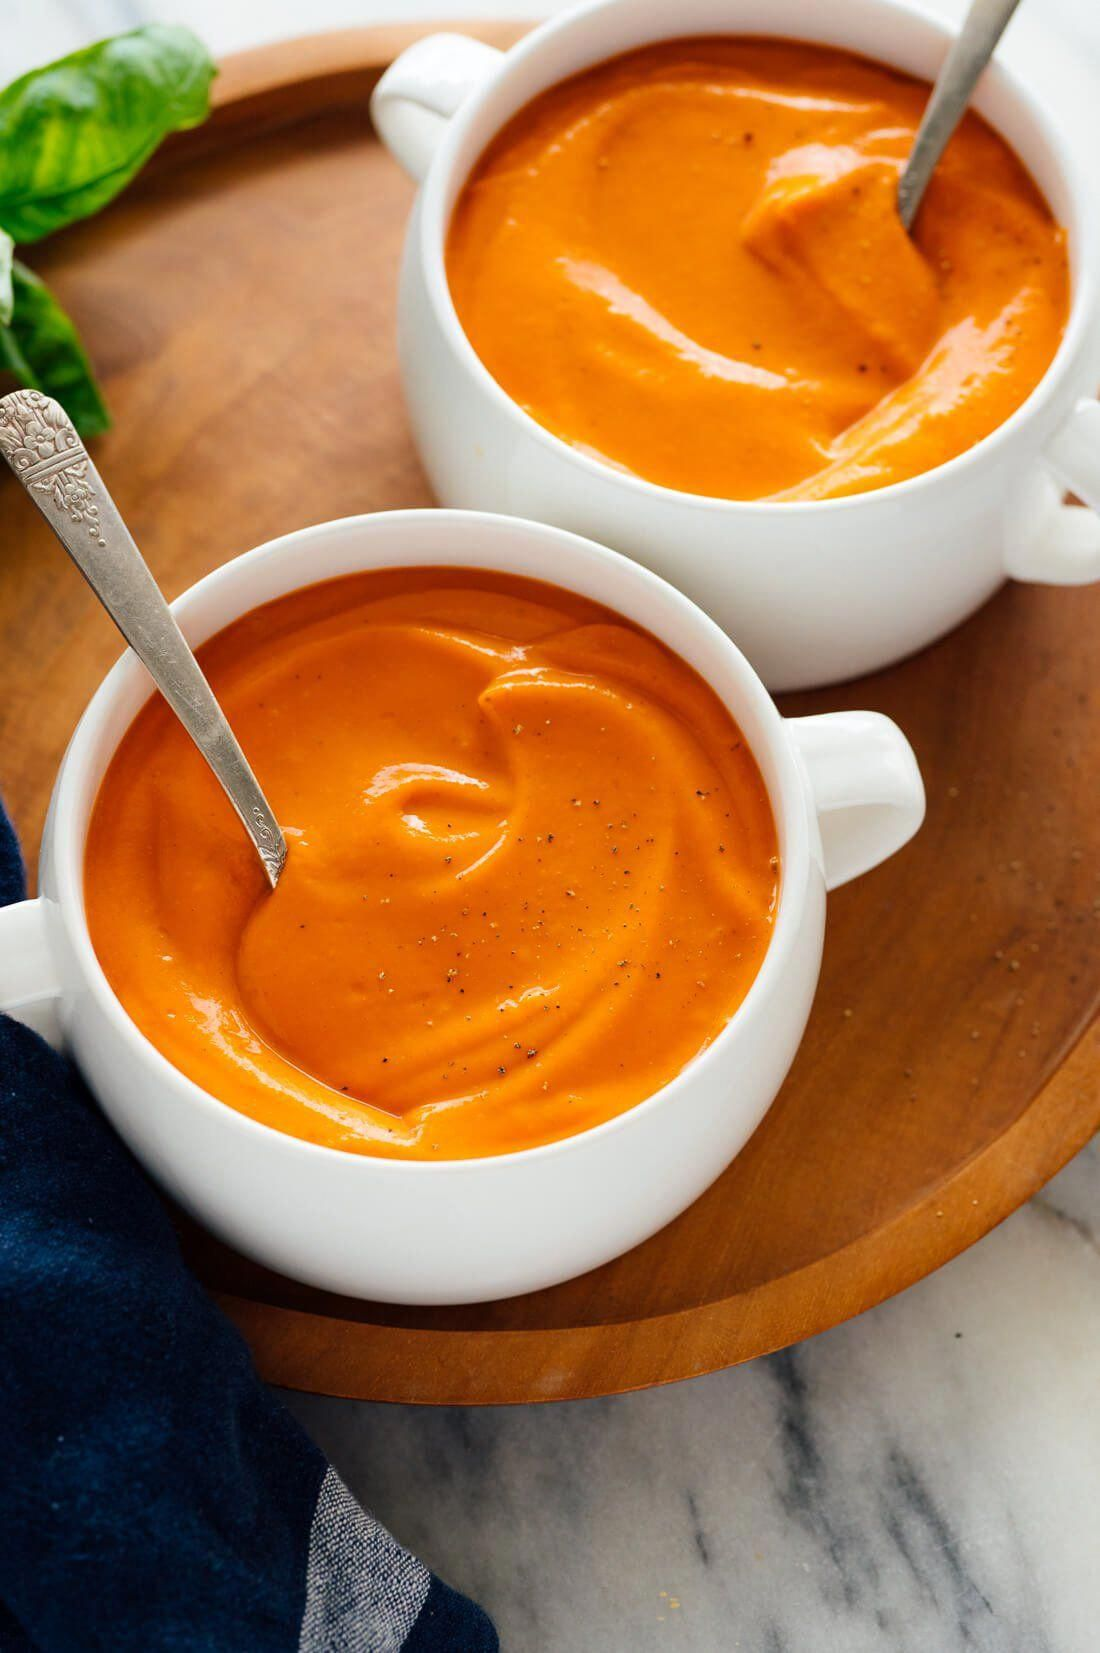 You're going to LOVE this classic tomato soup recipe! It's super creamy, yet light and cream-less. Learn how to make it tonight!